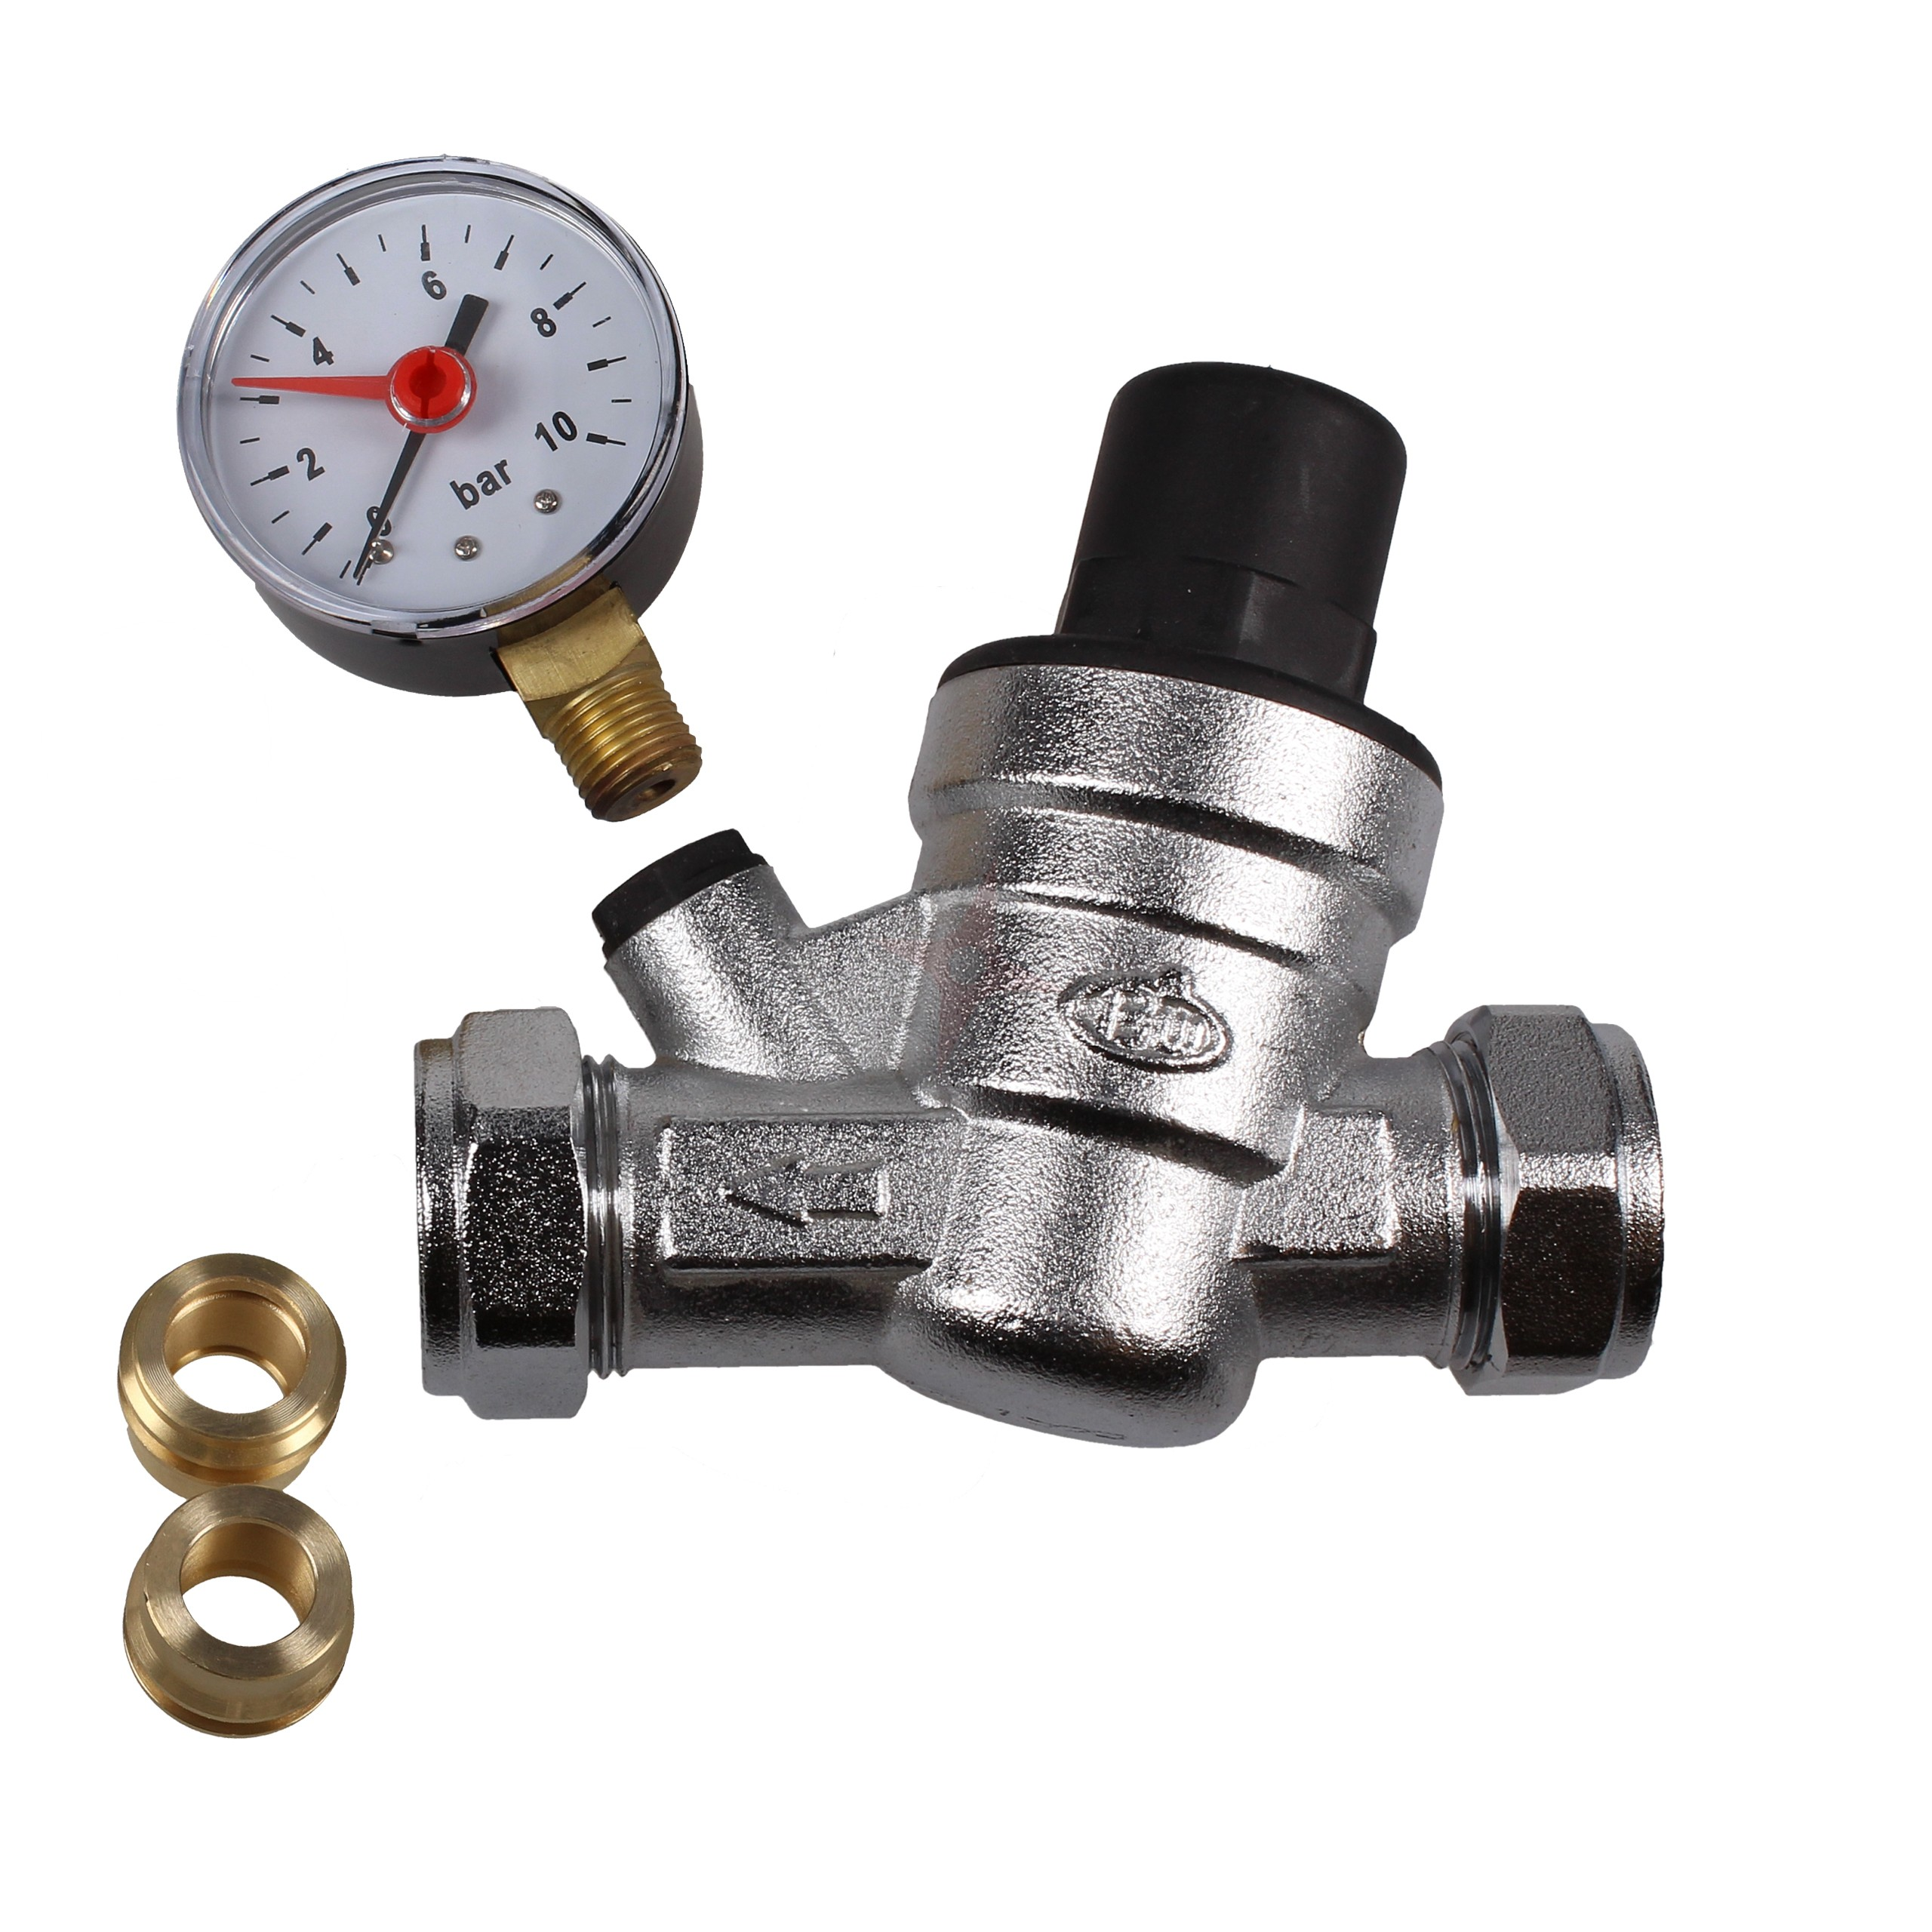 Evolve 15 & 22mm Pressure Reducing Valve c/w Gauge